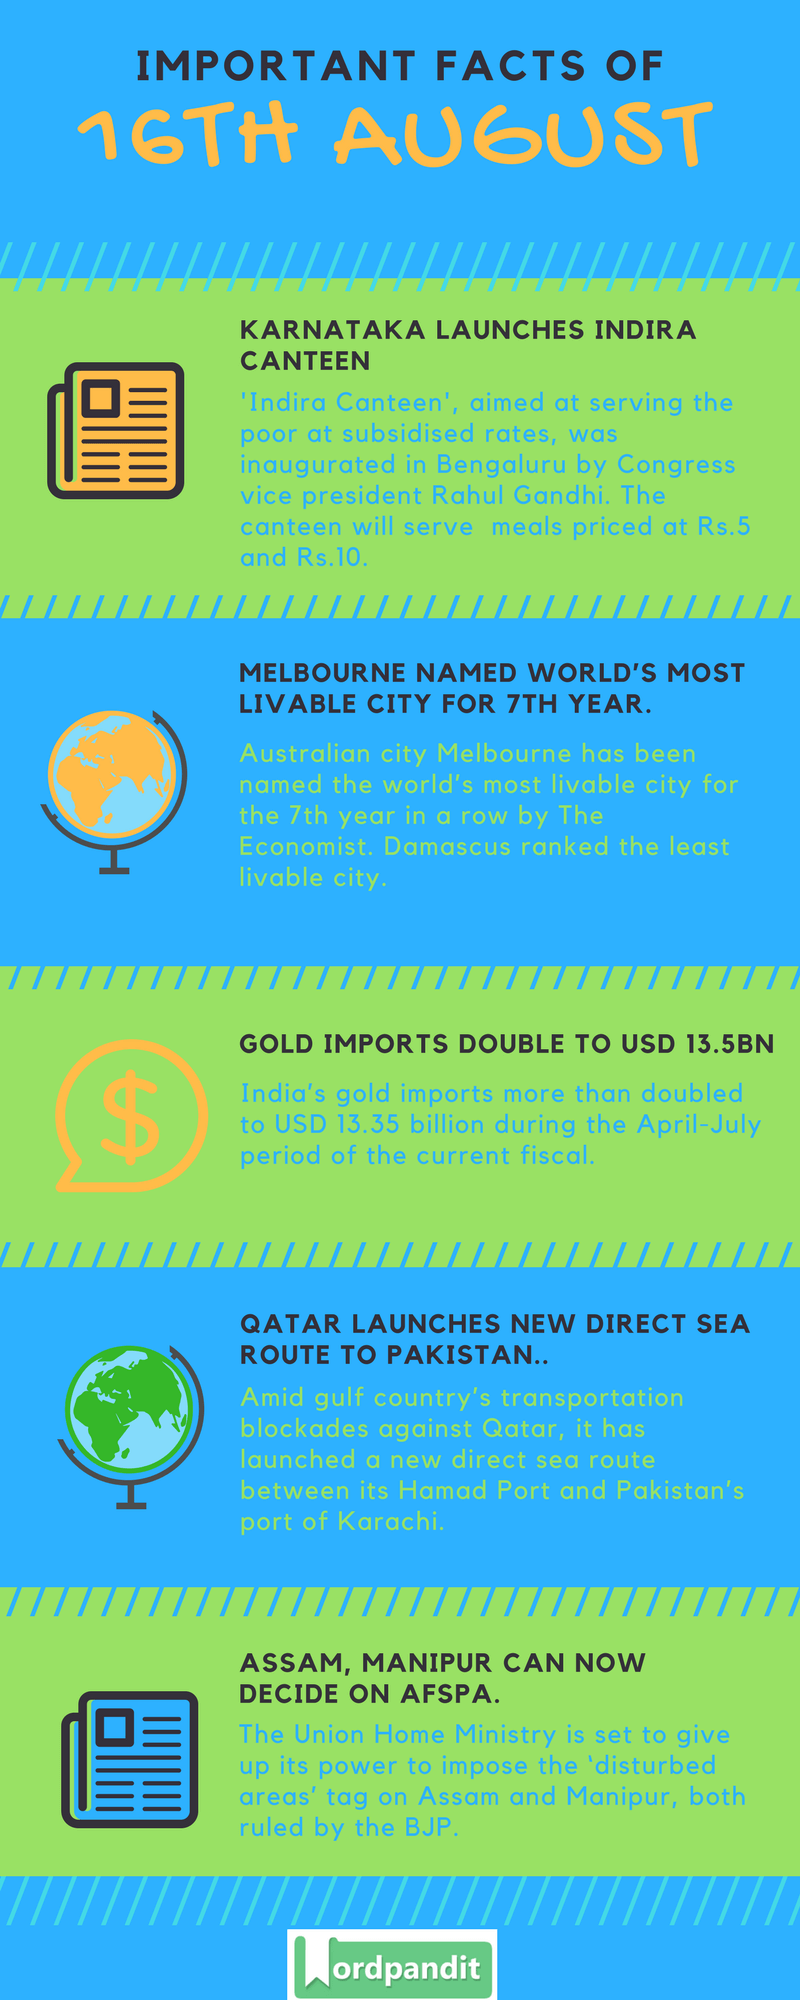 Daily-Current-Affairs-16-august-2017-Current-Affairs-Quiz-august-16-2017-Current-Affairs-Infographic